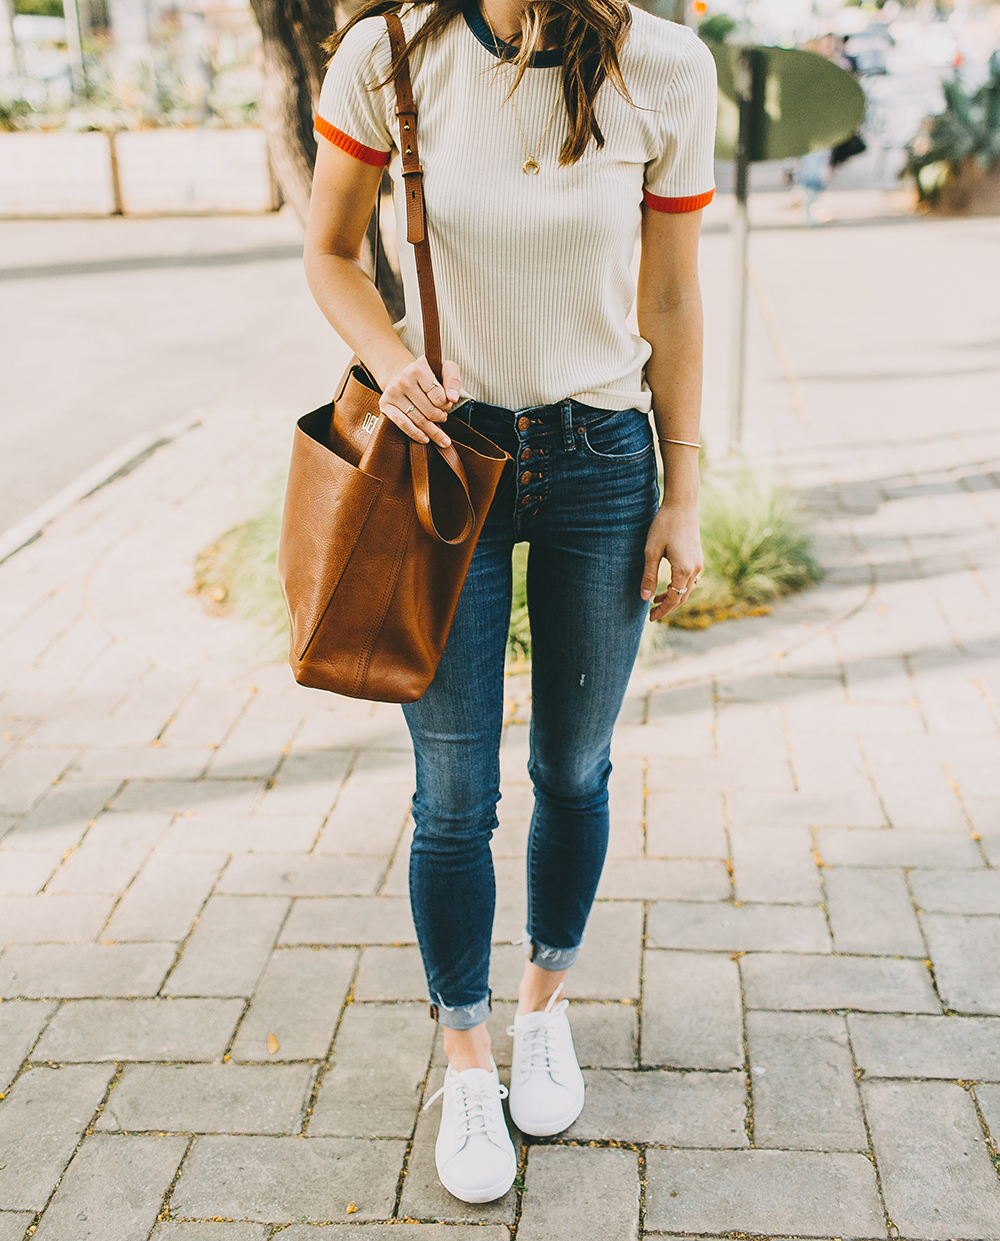 livvyland-blog-olivia-watson-fit-flop-white-leather-sneakers-outfit-3